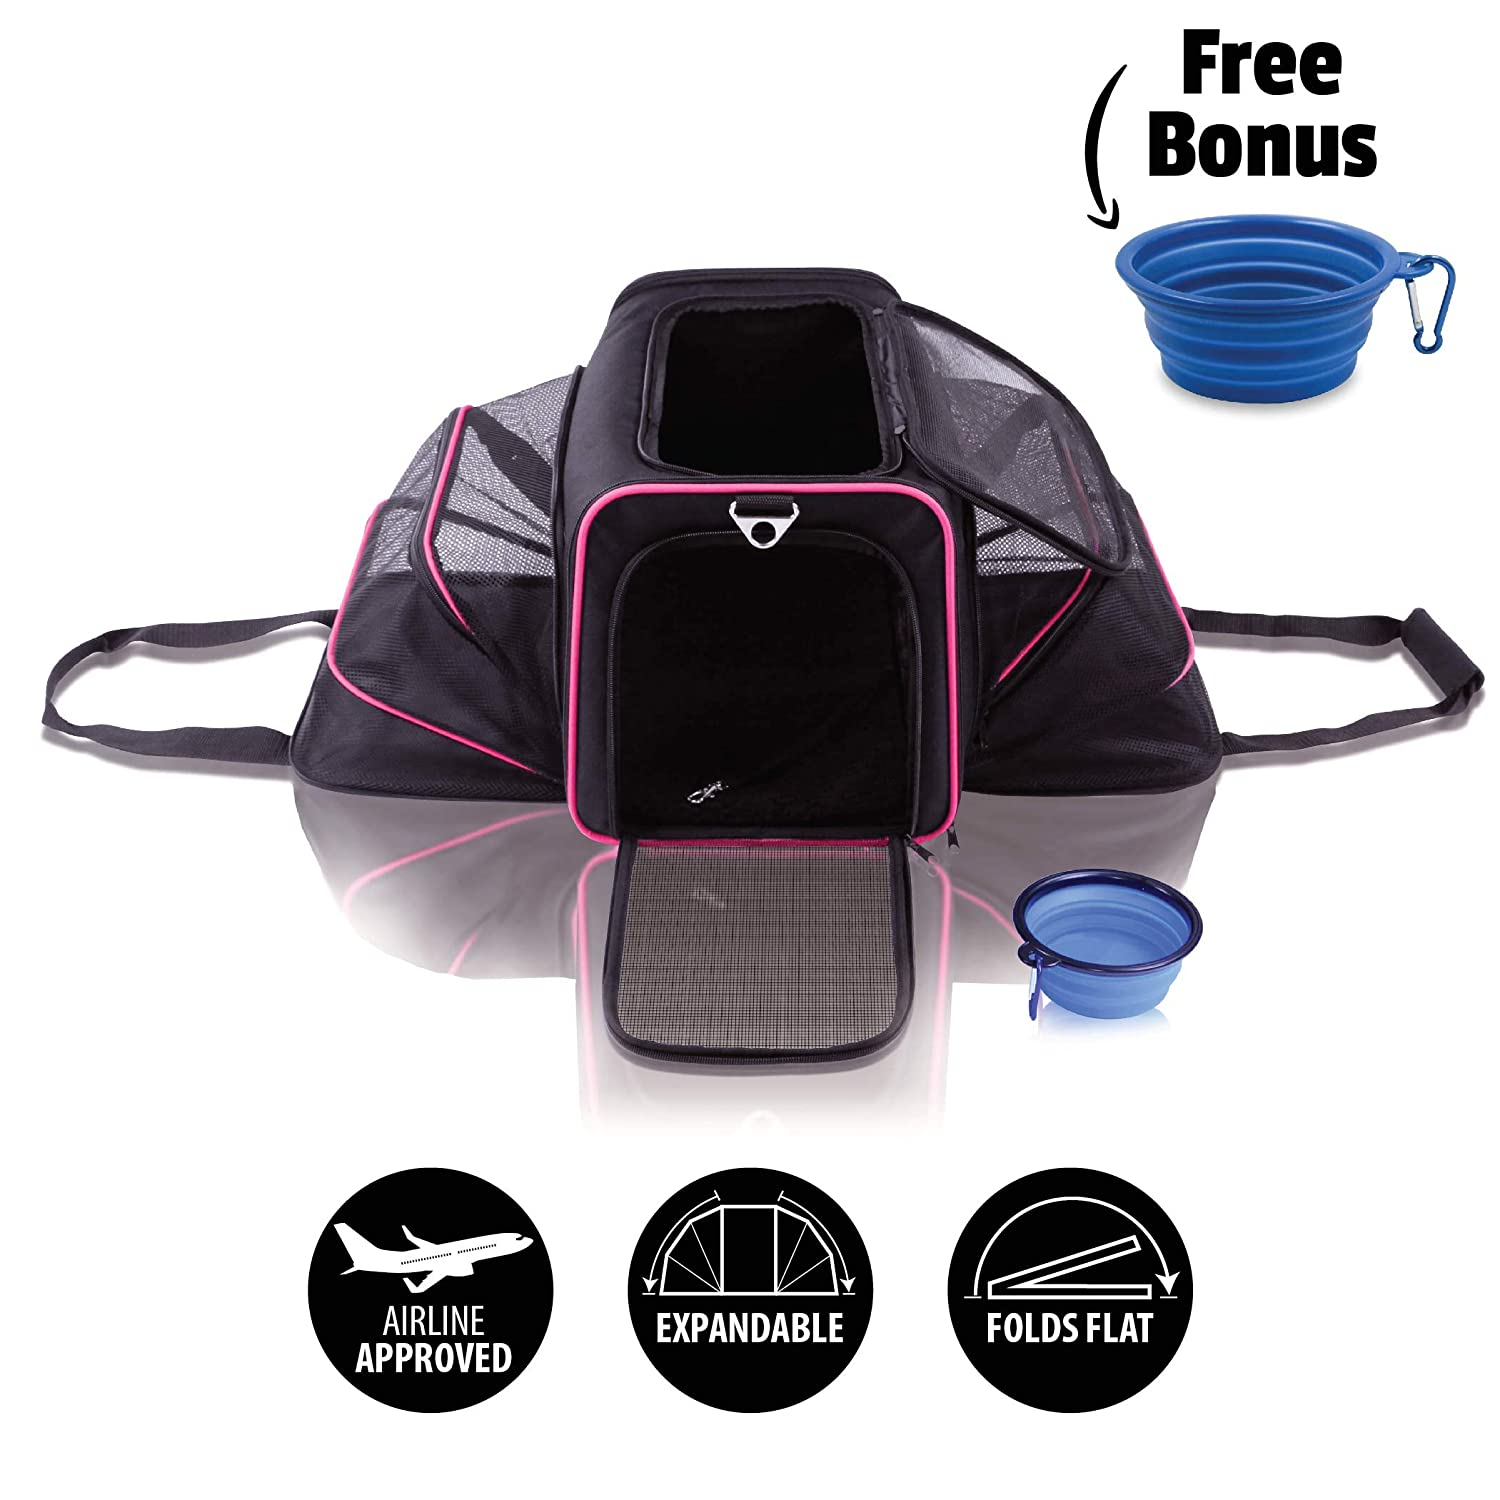 Black with Pink Lining Ruff n Ruffus Dual Expandable Soft Pet Carrier + FREE BOWL   Airline Approved   Safe for use as pet Car Seat   For Dogs Cats and Small Pets   Two Sided Expandable Kennel Crate   Spacious Soft Interior